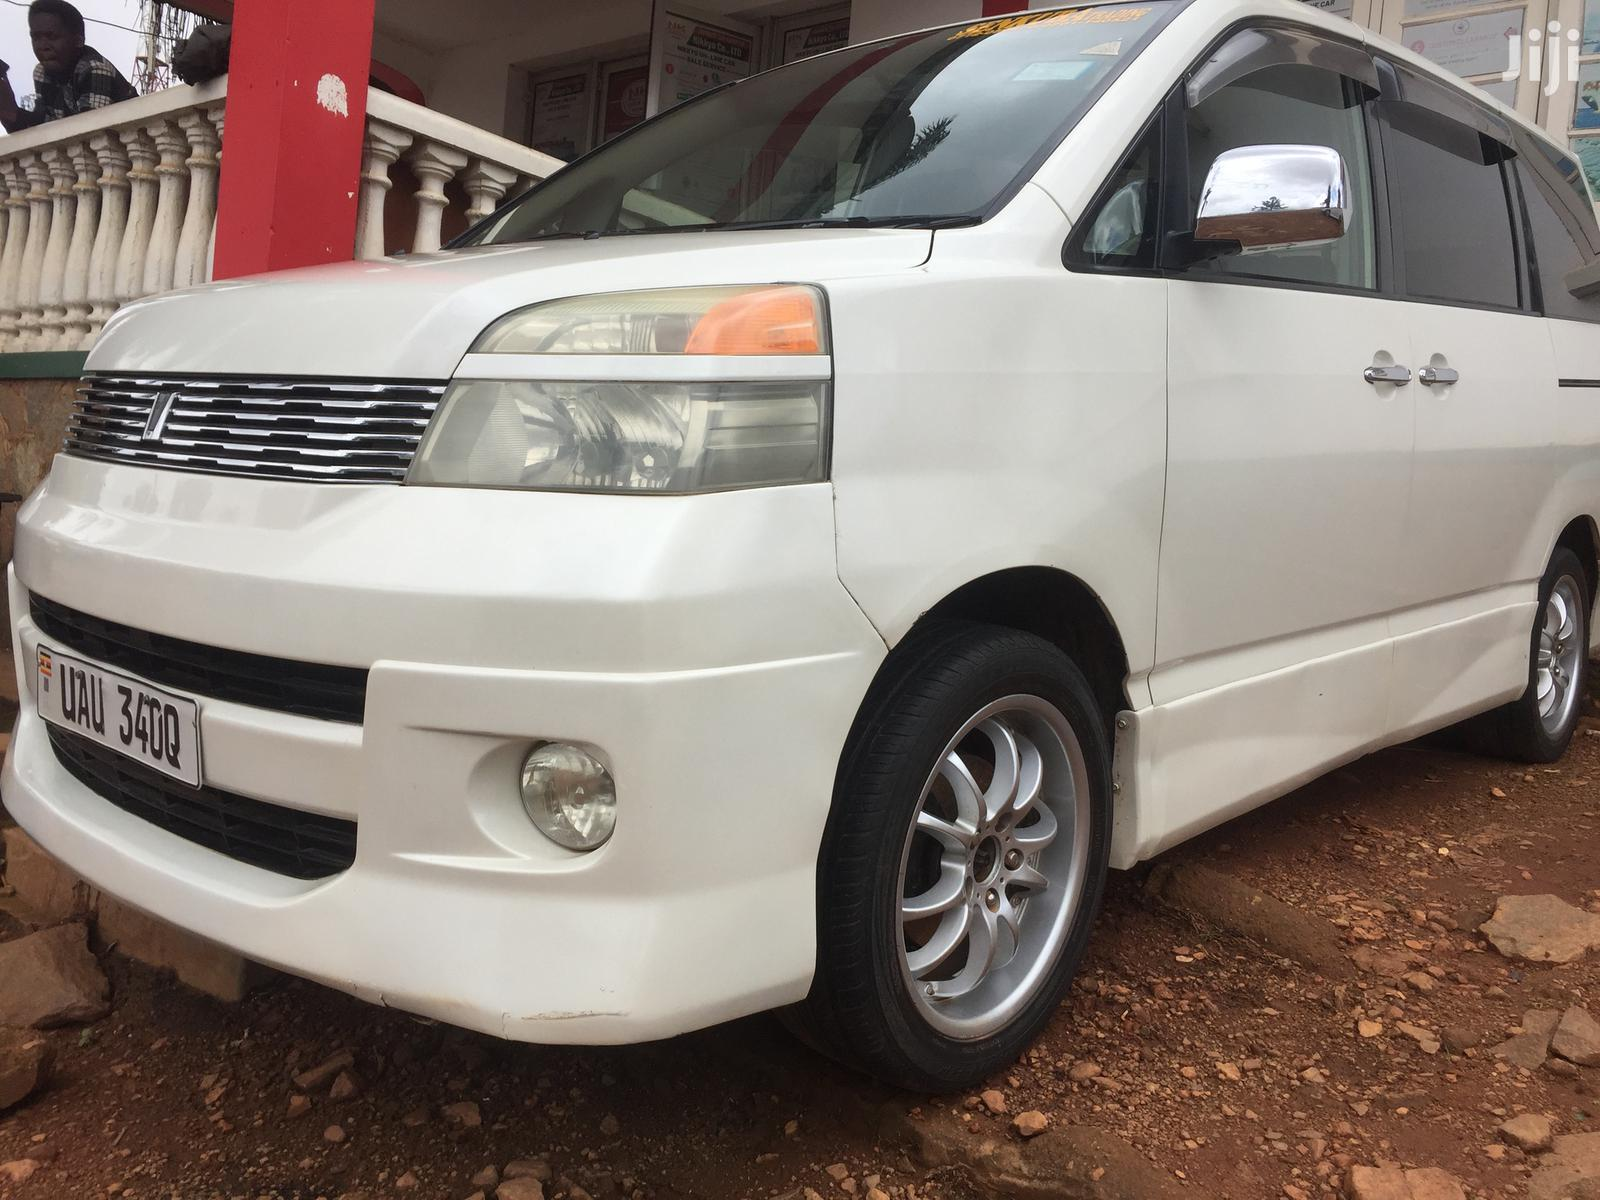 Toyota Voxy 2003 White | Cars for sale in Kampala, Central Region, Uganda